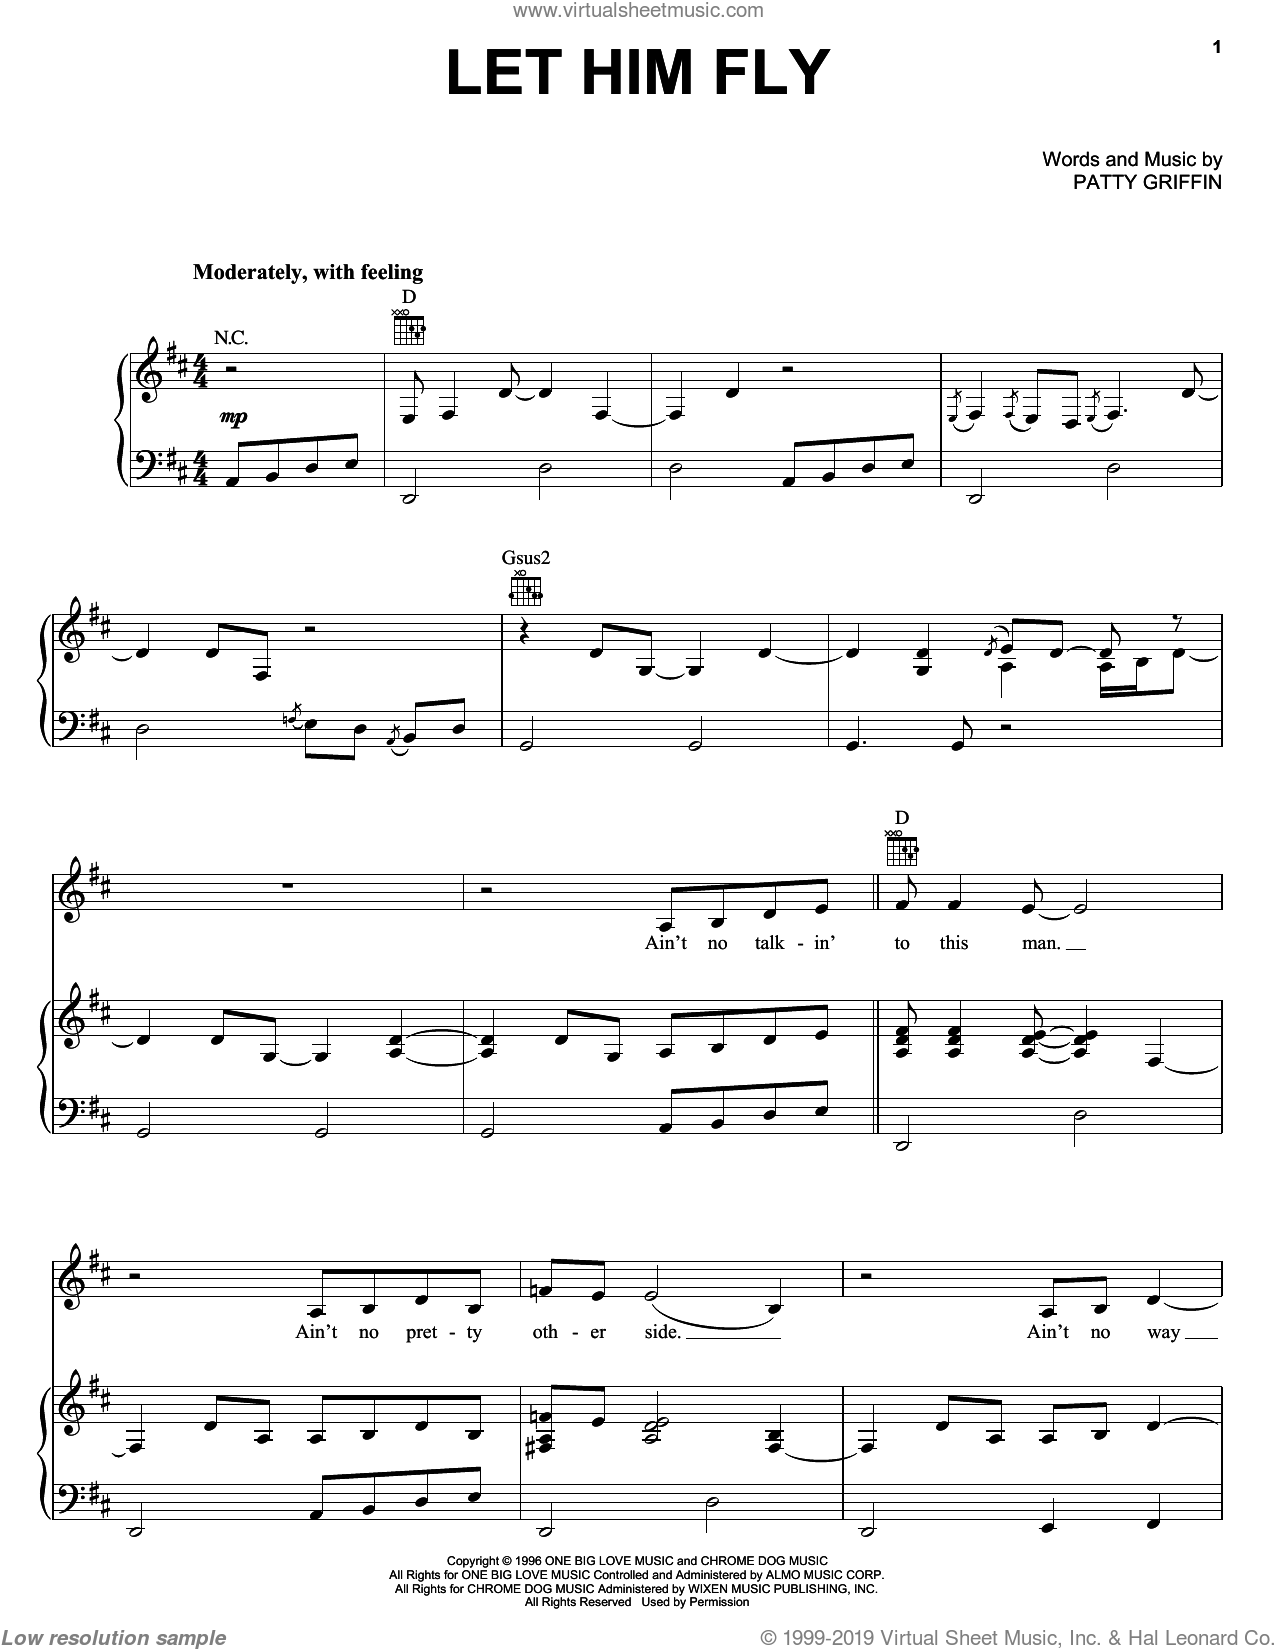 Let Him Fly sheet music for voice, piano or guitar by Jessica Simpson, Dixie Chicks and Patty Griffin, intermediate skill level